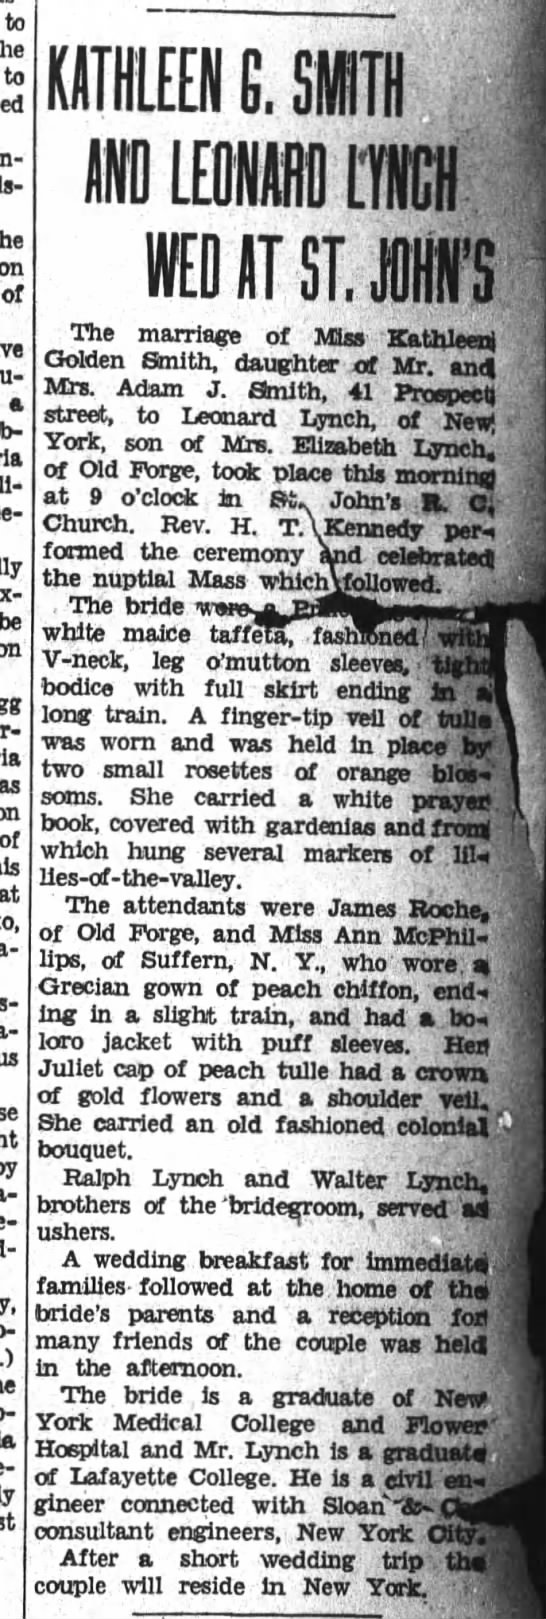 Kathleen Golden Smith marries Leonard Lynch - to the to of a be of at C. WED AT ST. JOHN'S...